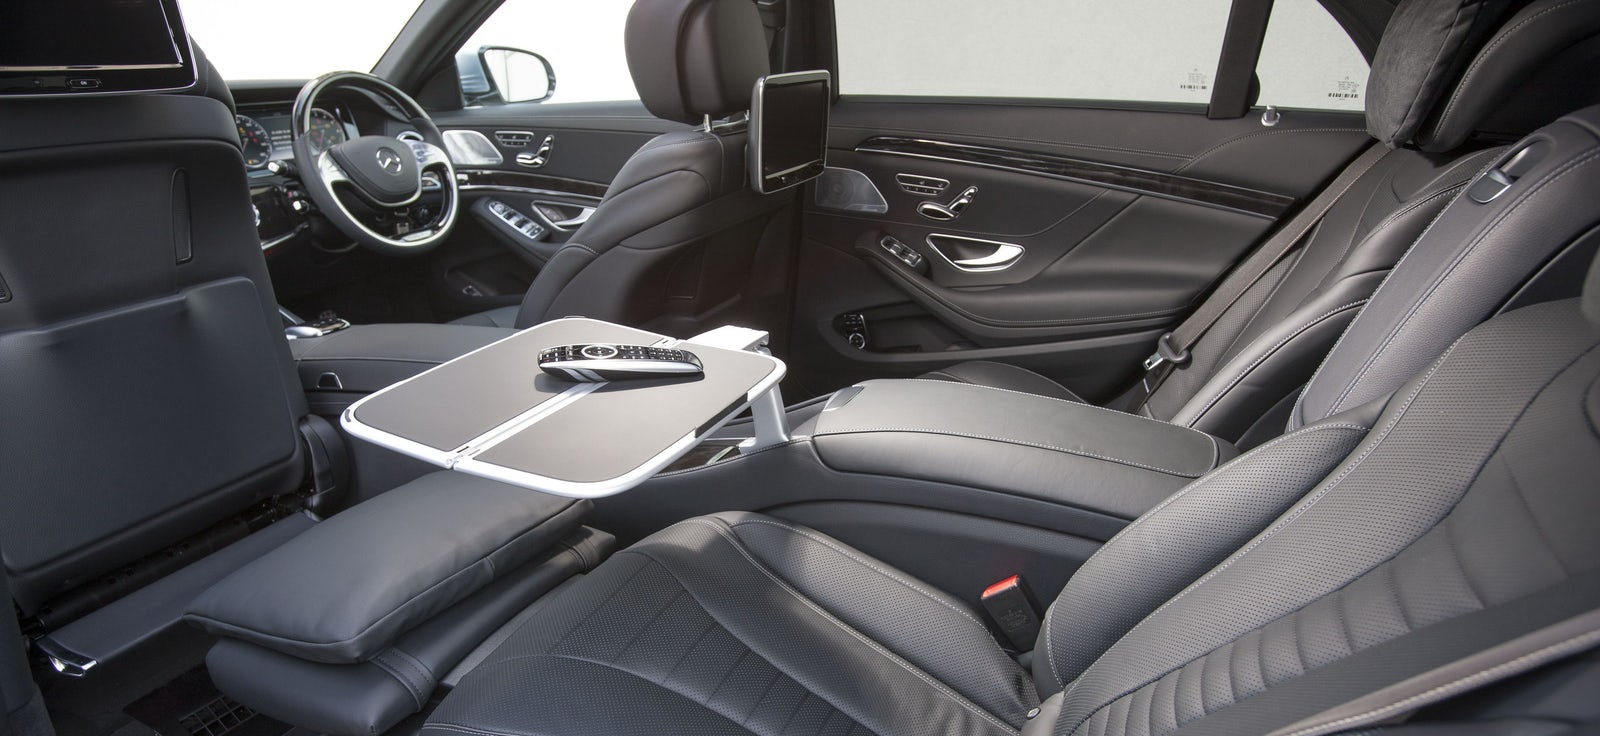 Lot of new cars coming in at moment looking to make some room have a - The Plush Surroundings And Classy Dashboard All Add To The Interior S Sophisticated Styling And Practicality But Although These Elements May Be Impressive